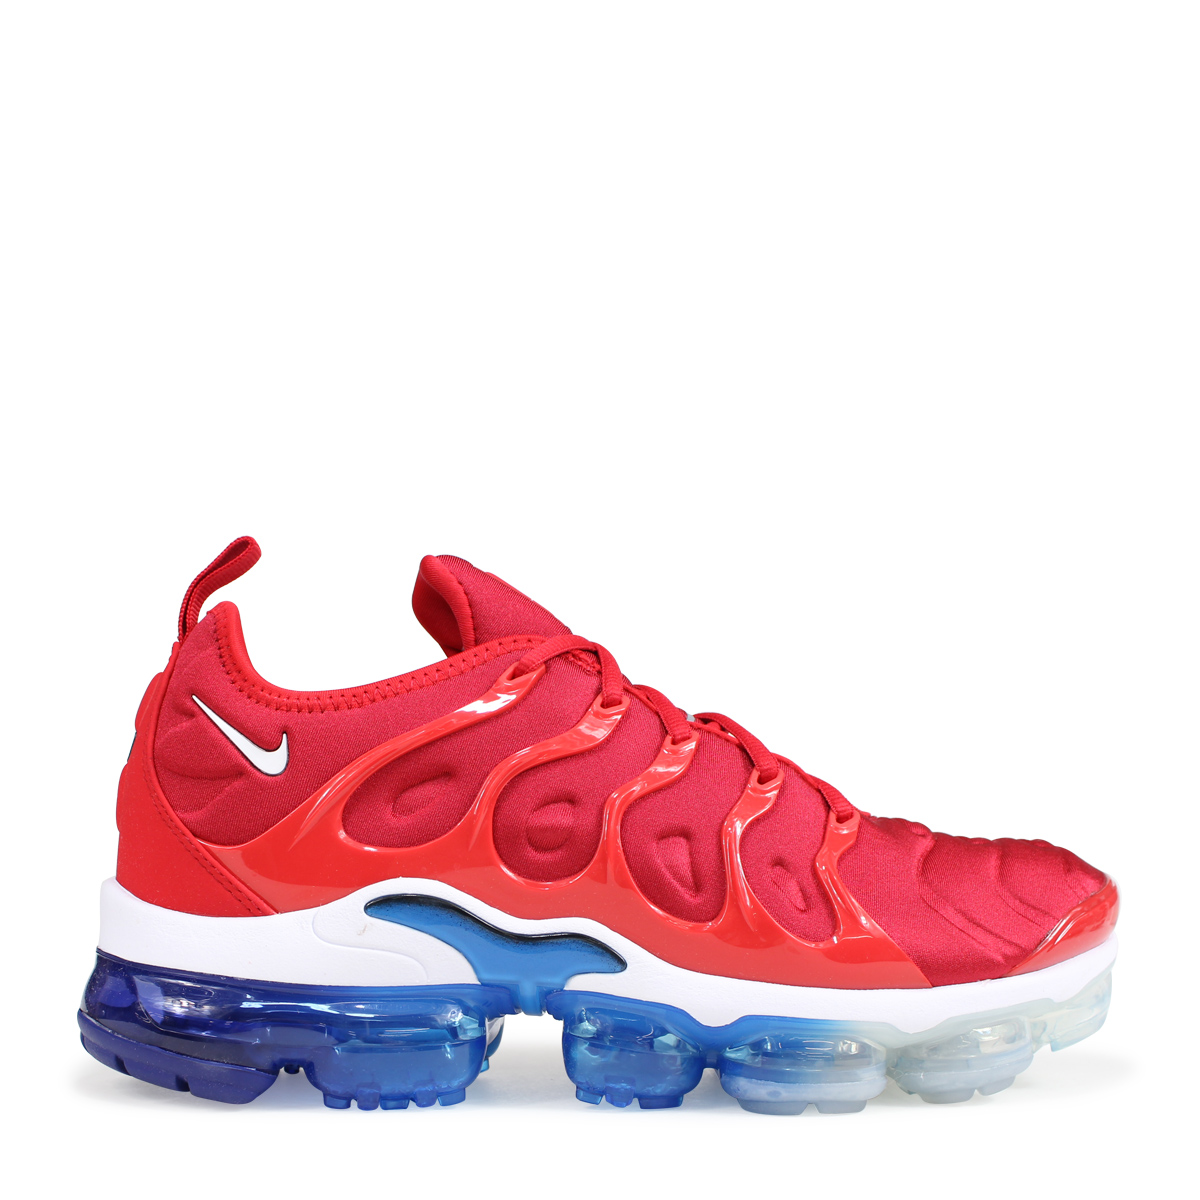 cheap for discount ea9fd 7957a NIKE AIR VAPORMAX PLUS Nike air vapor max plus sneakers men 924,453-601 red  [load planned Shinnyu load in reservation product 8/18 containing] [188]